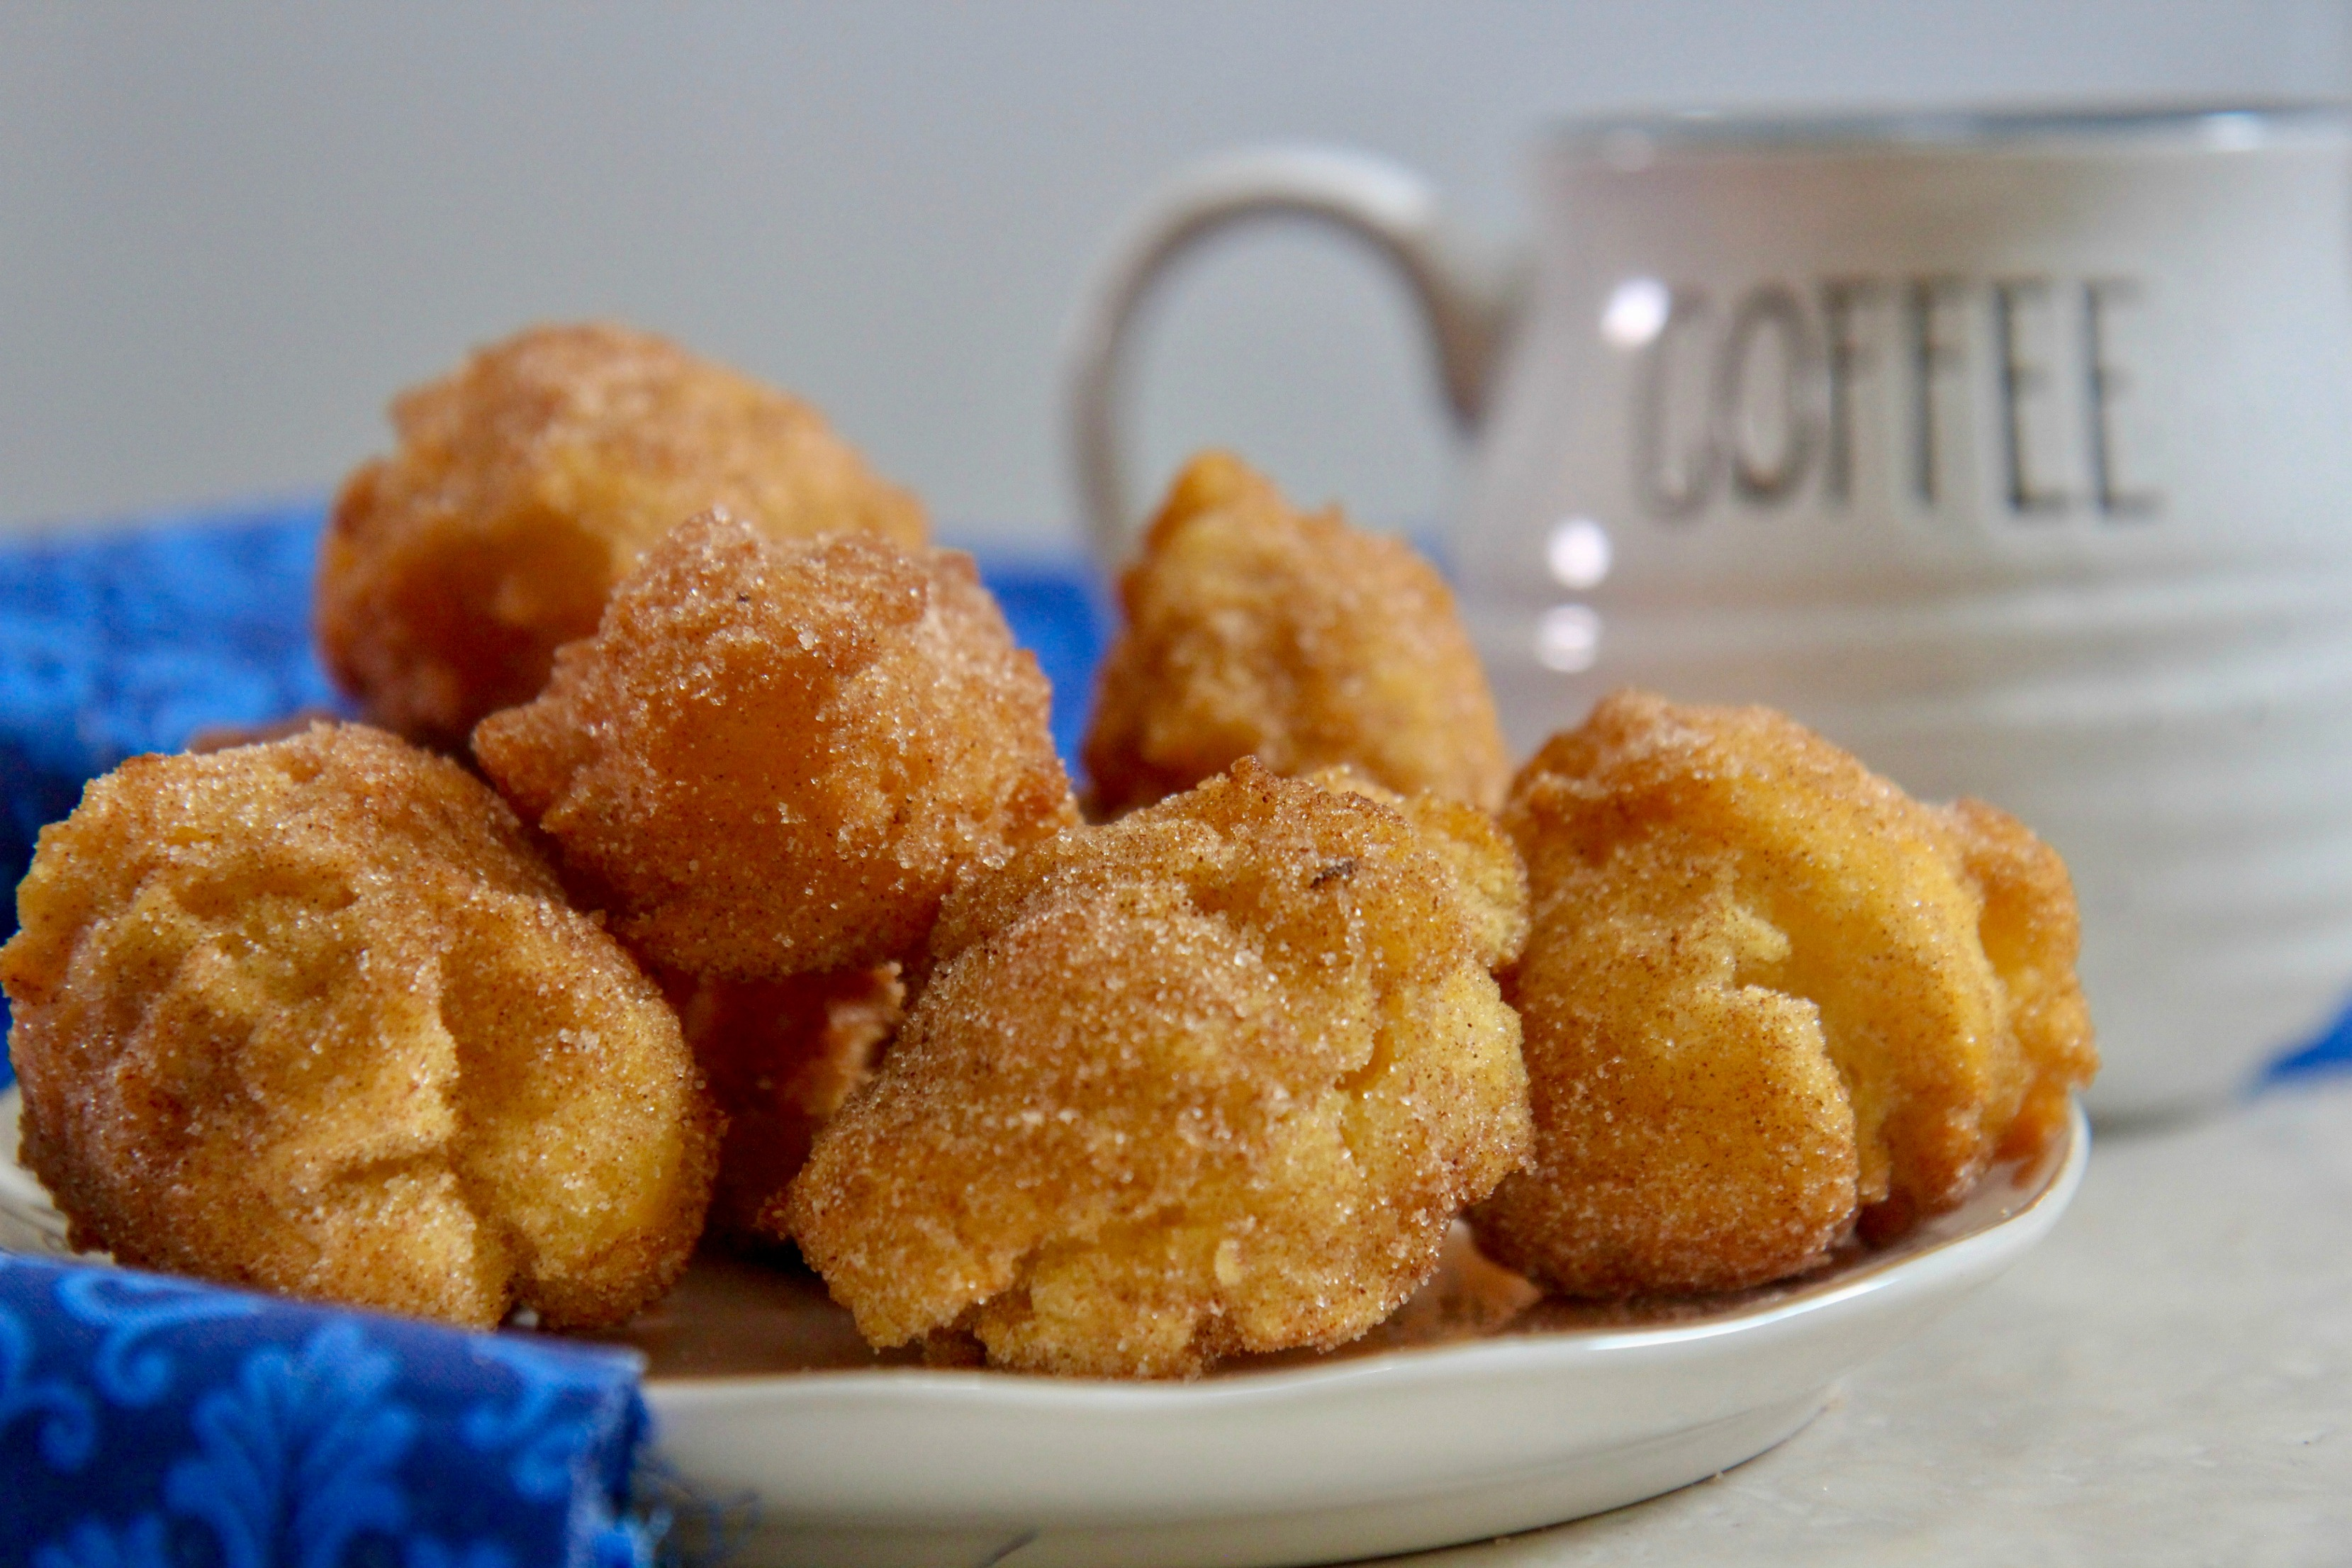 Lightly battered and sugared donut holes